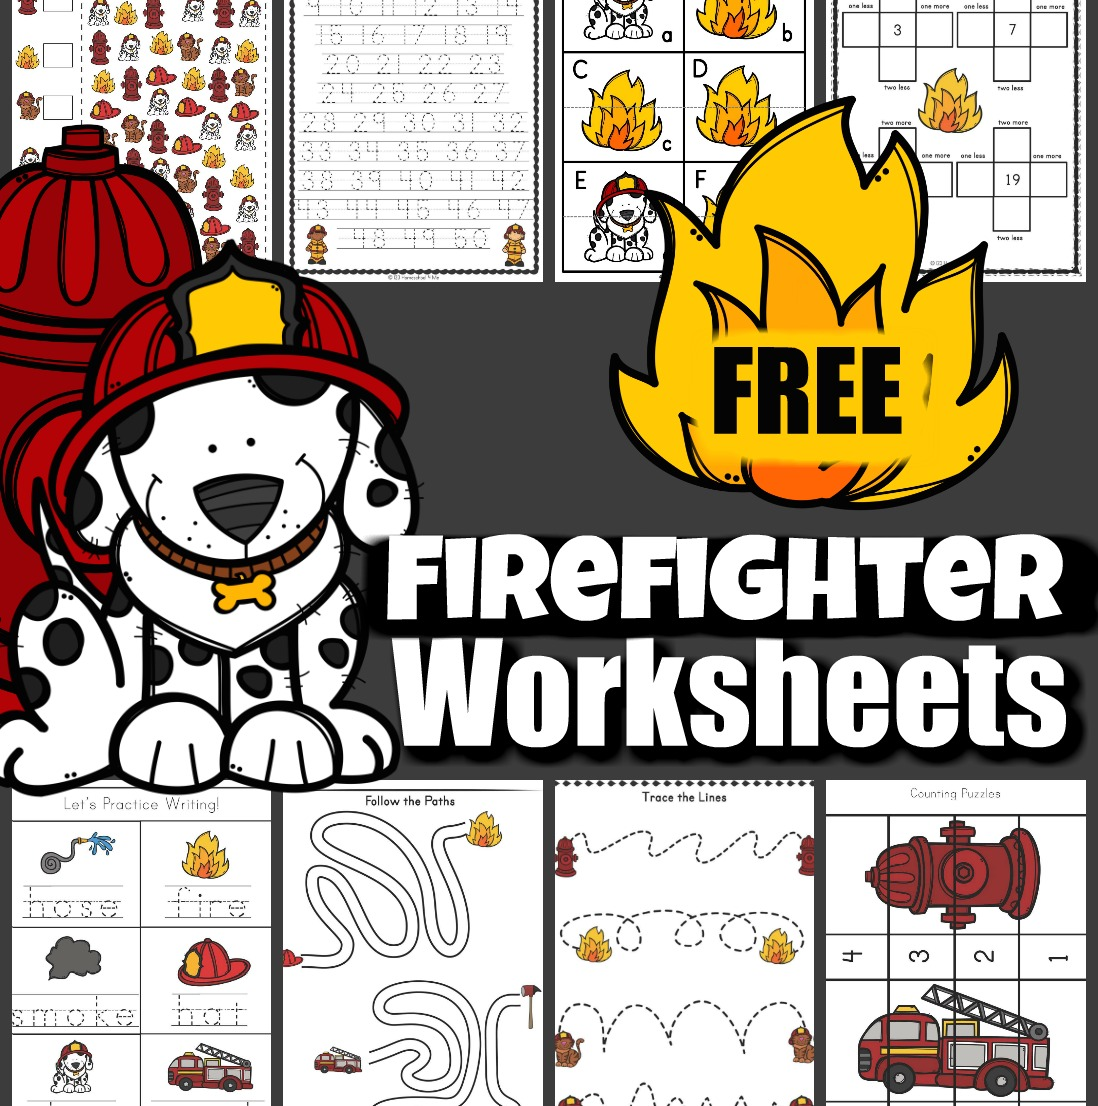 free firefighter worksheets